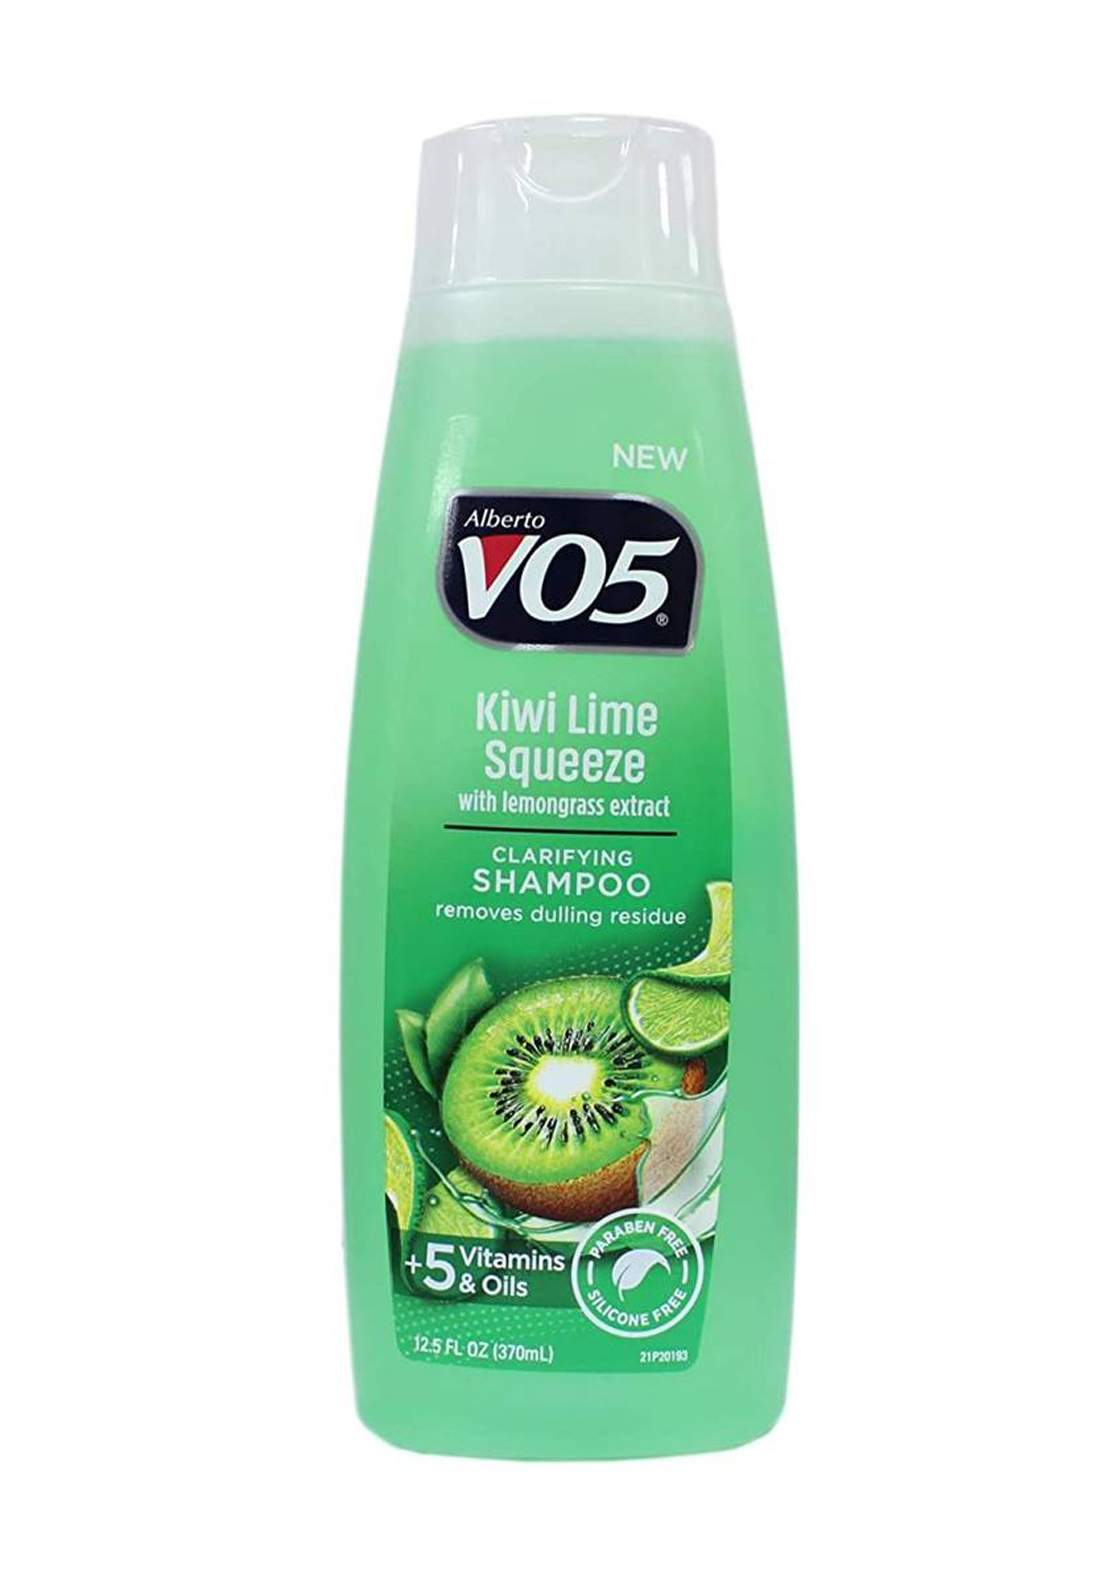 VO5 Herbal Escapes Kiwi Lime Squeeze Clarifying Shampoo 370ml  شامبو للشعر